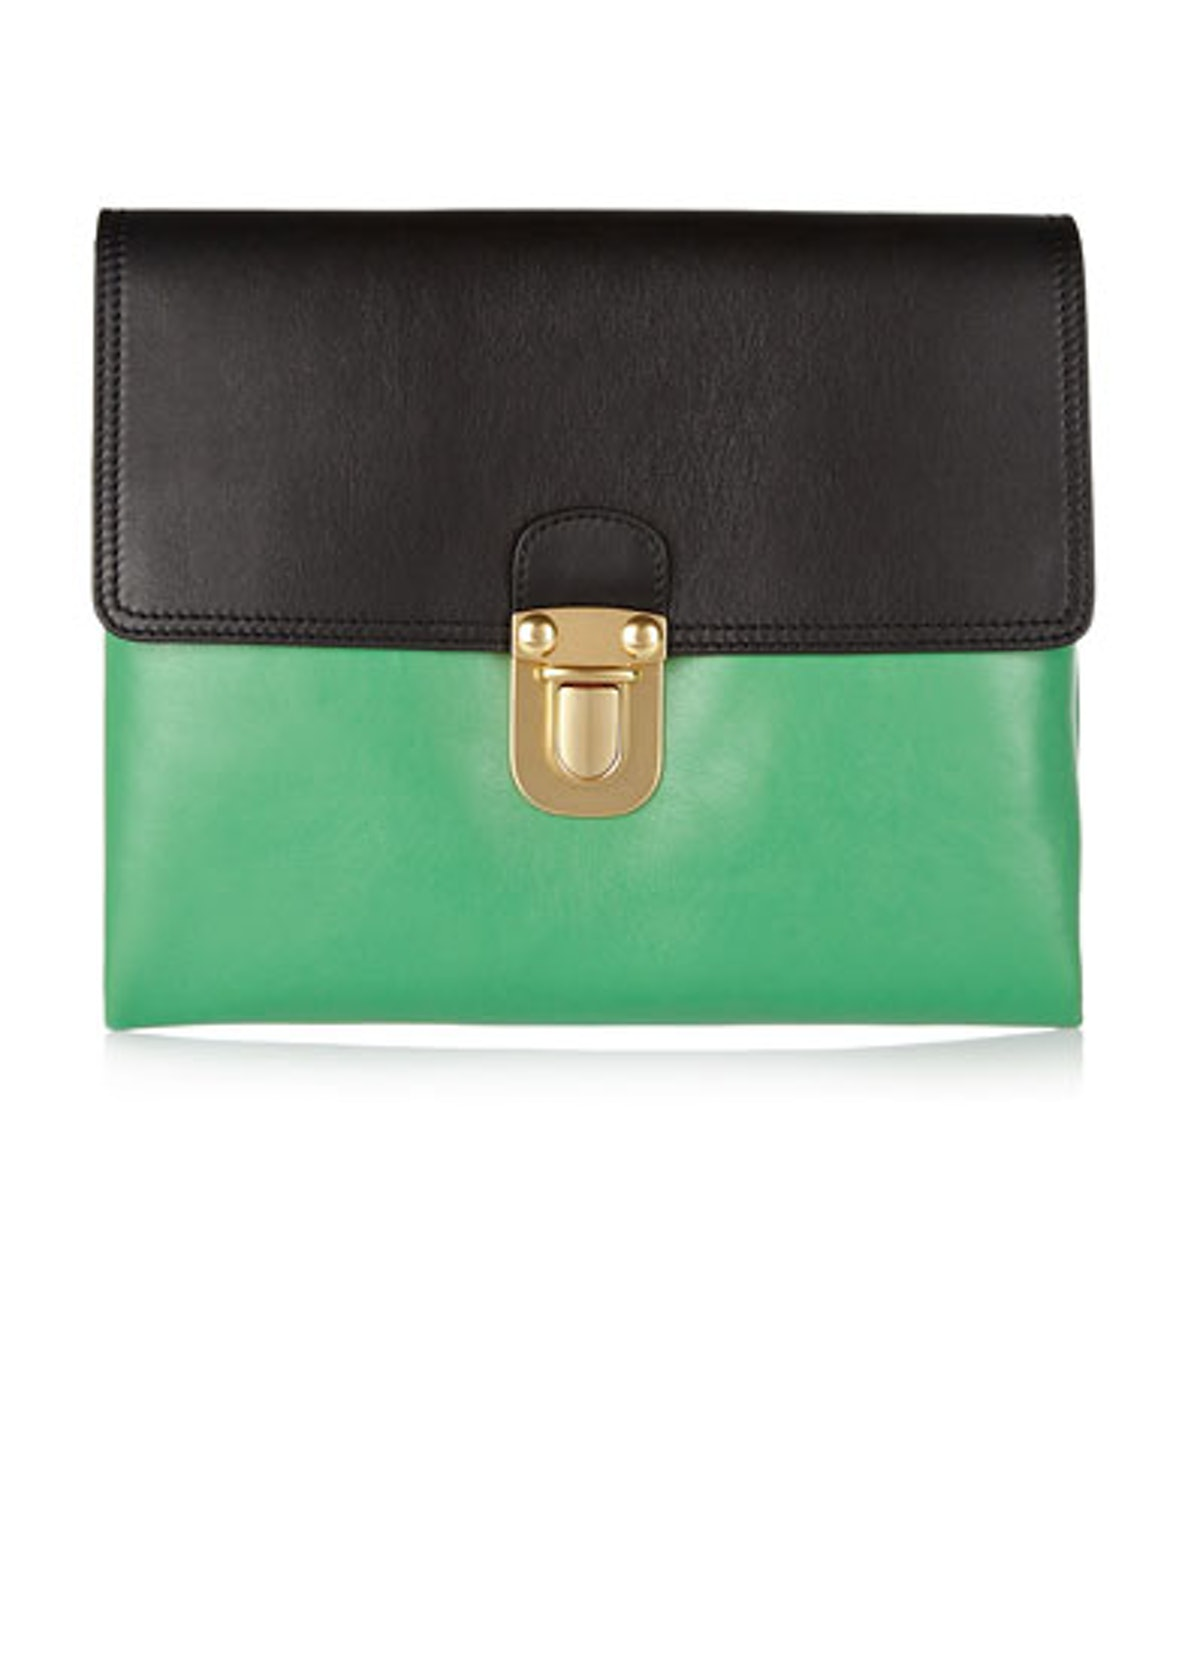 acss-color-blocked-clutches-03-v.jpg